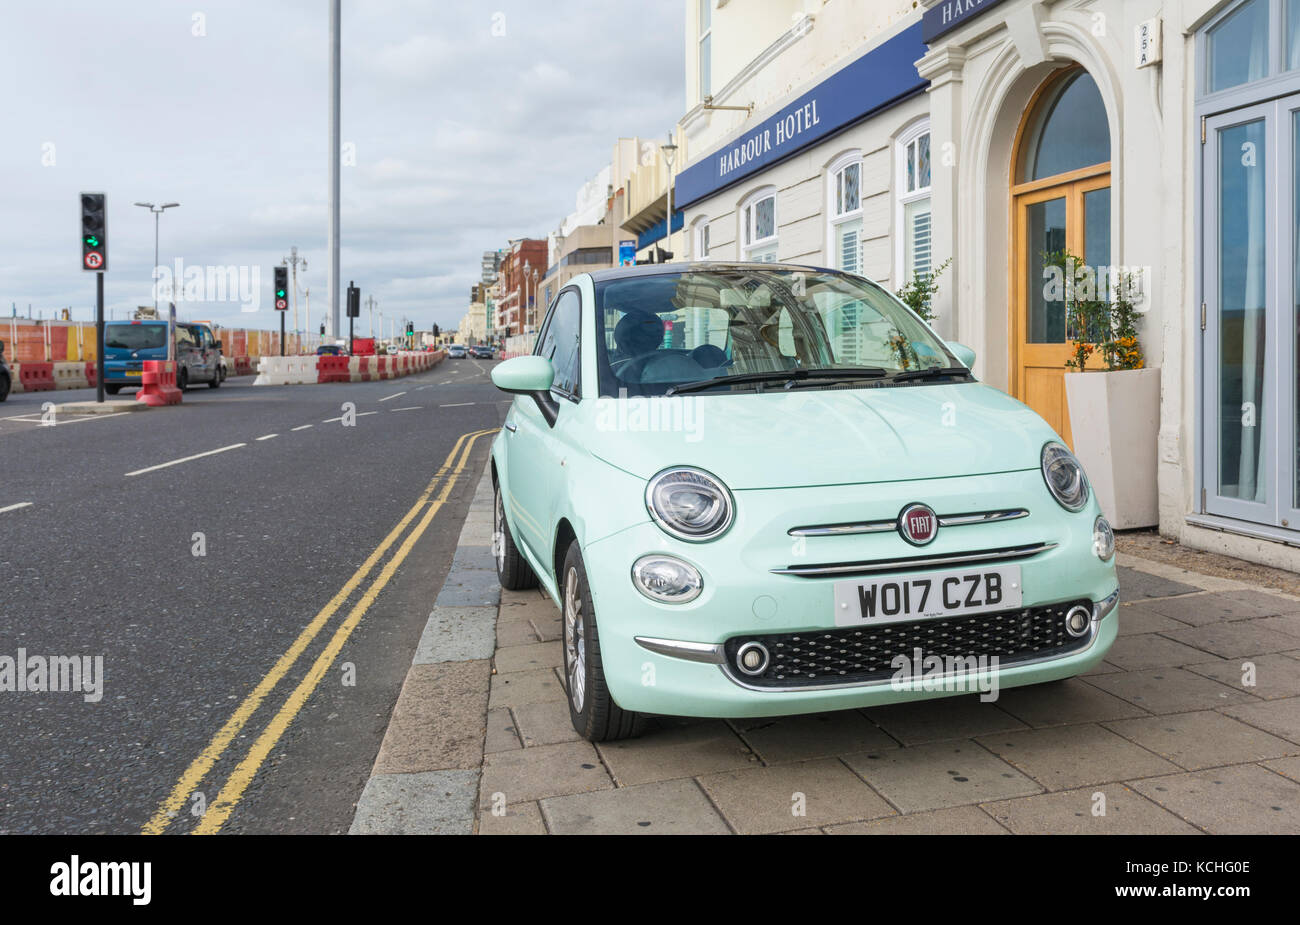 Car parked on a pavement in the UK. - Stock Image